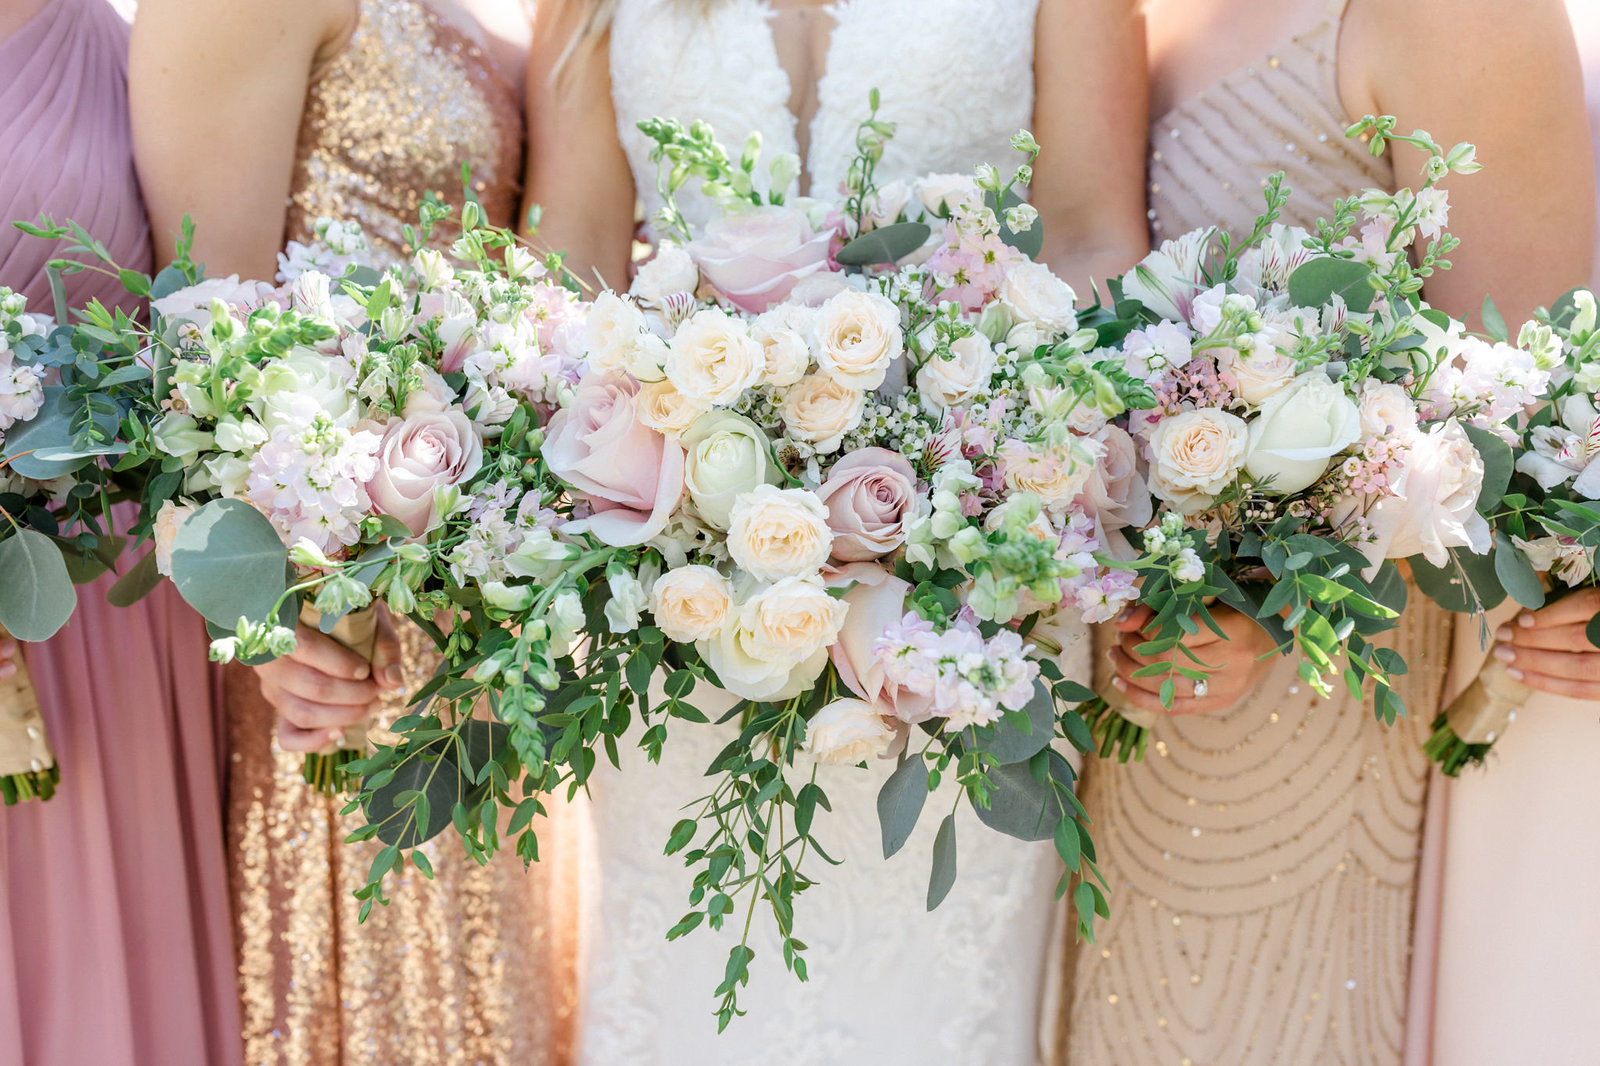 Blush  and white unstructured bouquets